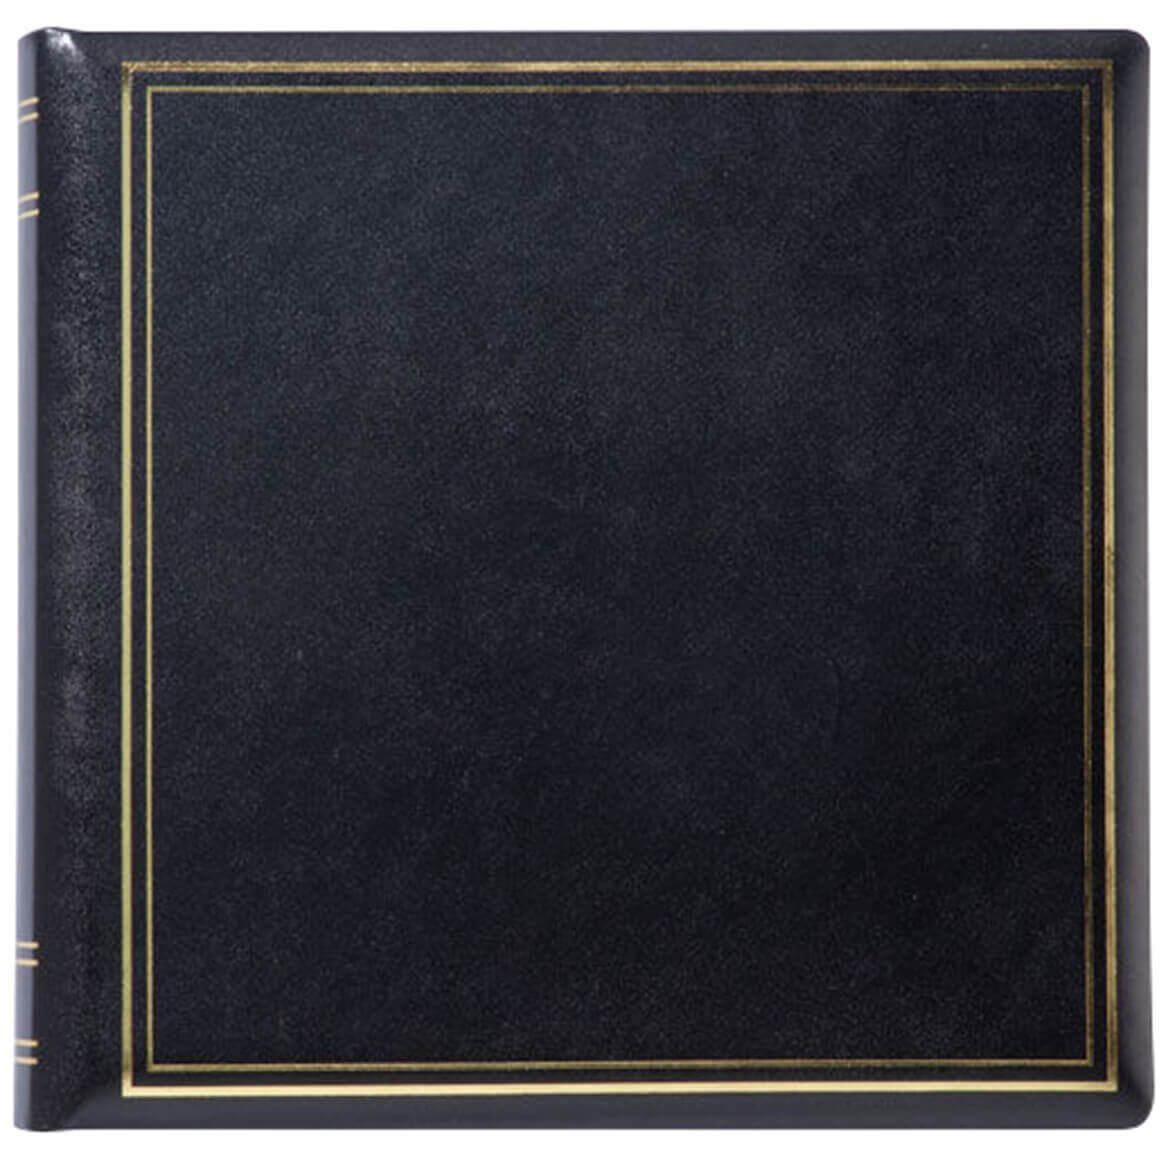 Personalized Presidential Leather Album - Black 3 Lines by Exposures